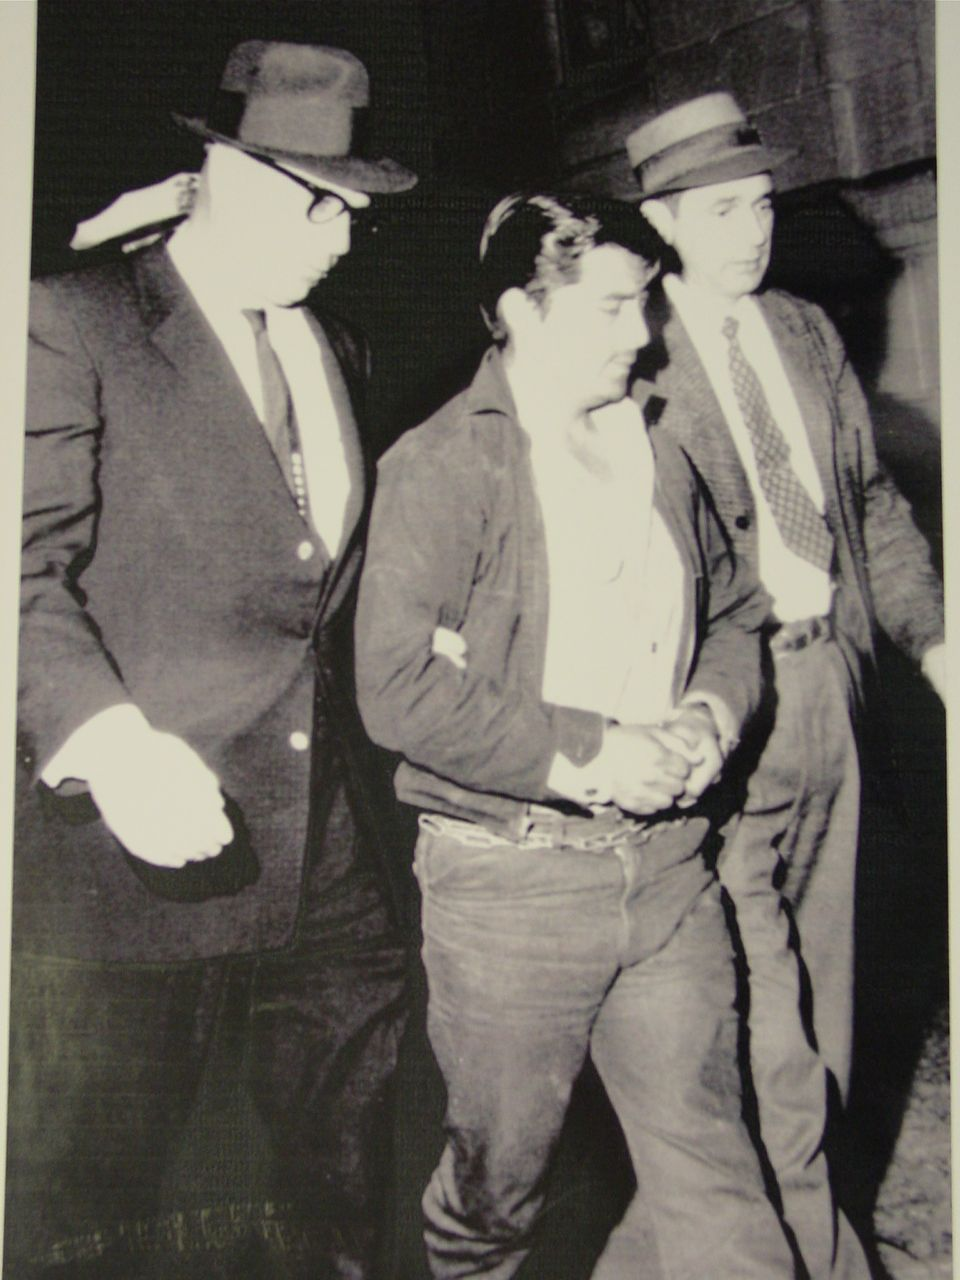 Perry Smith - one of the murderers of the Clutter family - IN COLD ...